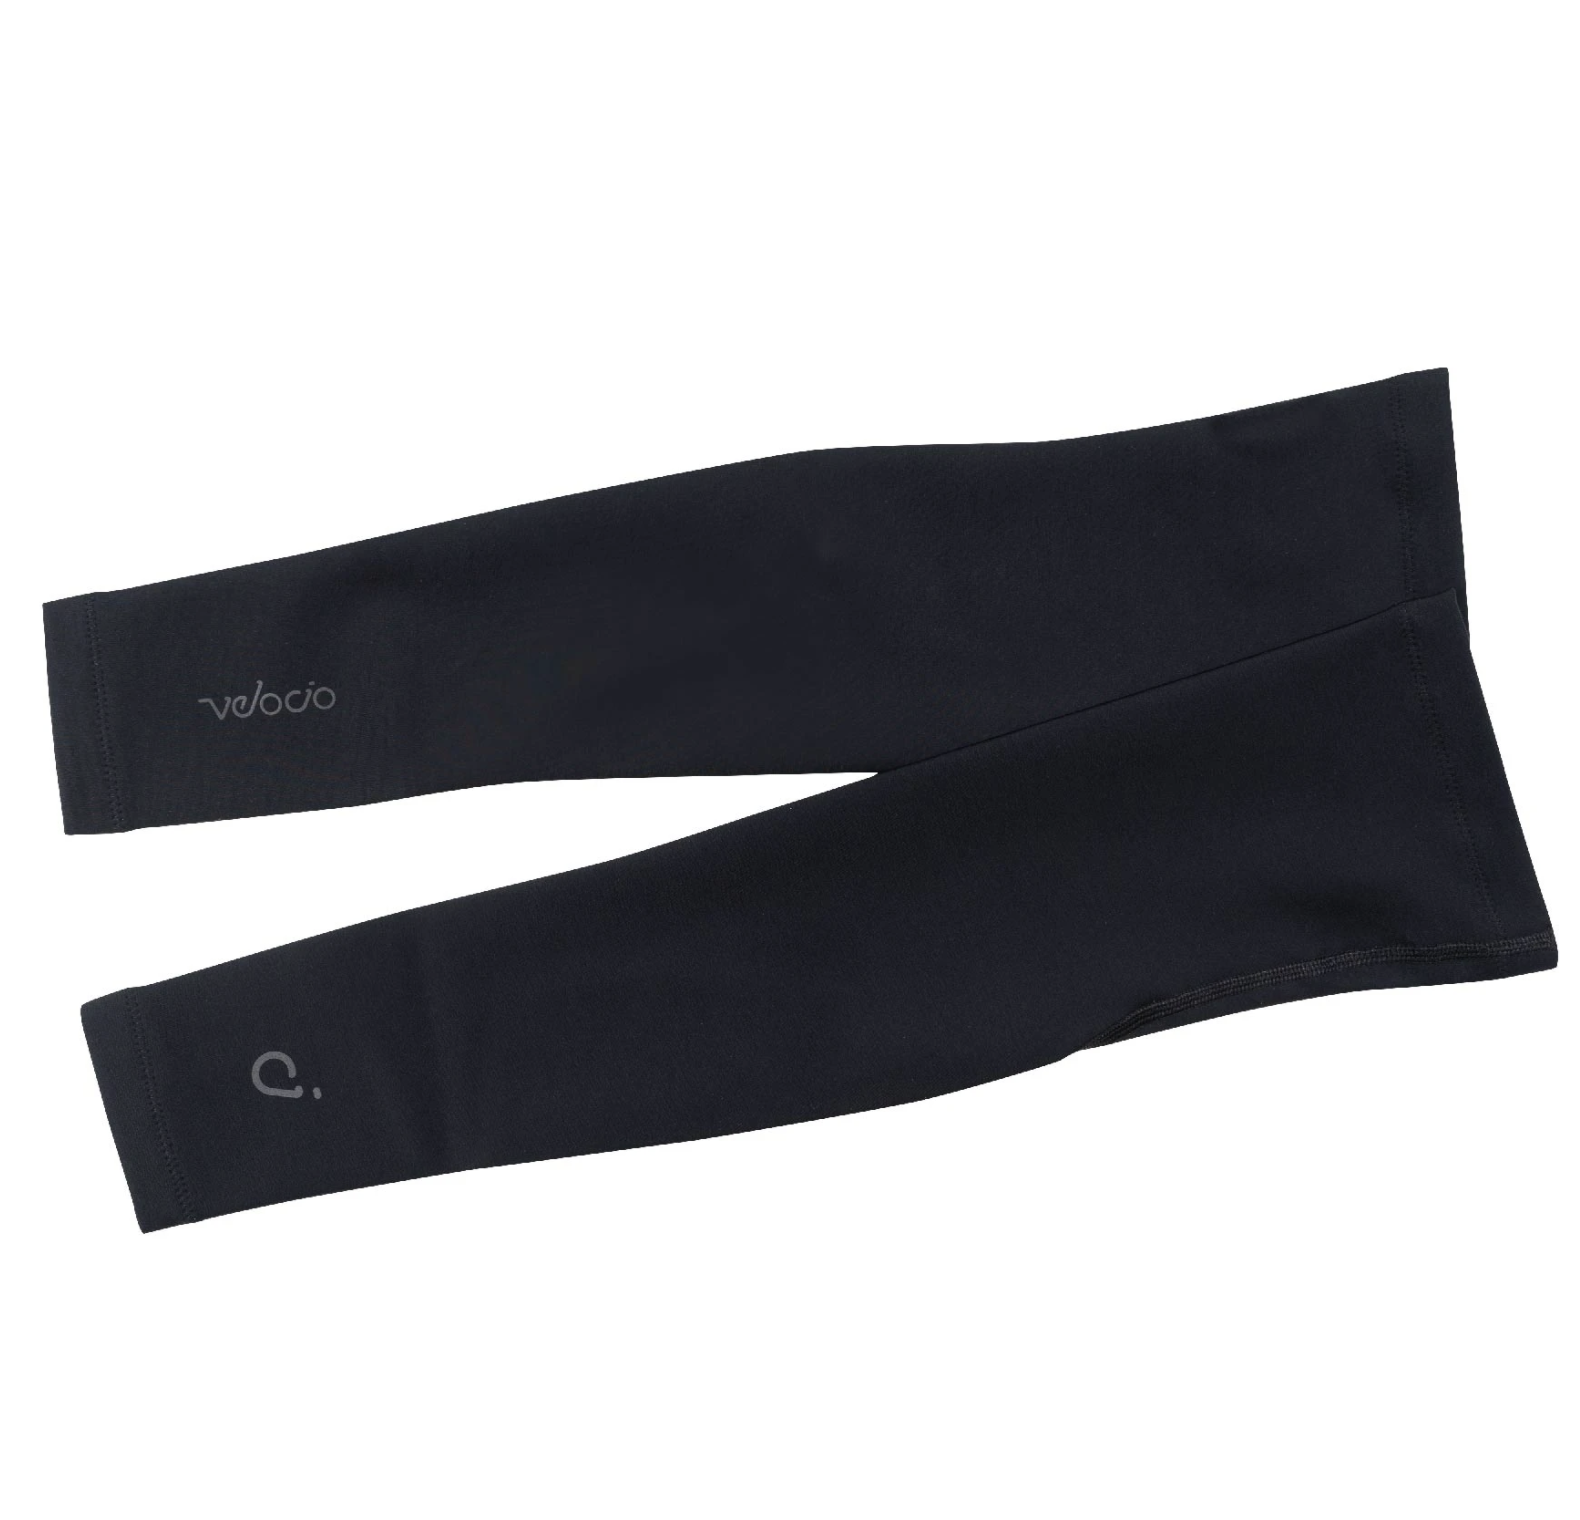 VELOCIO THERMAL ARM WARMER